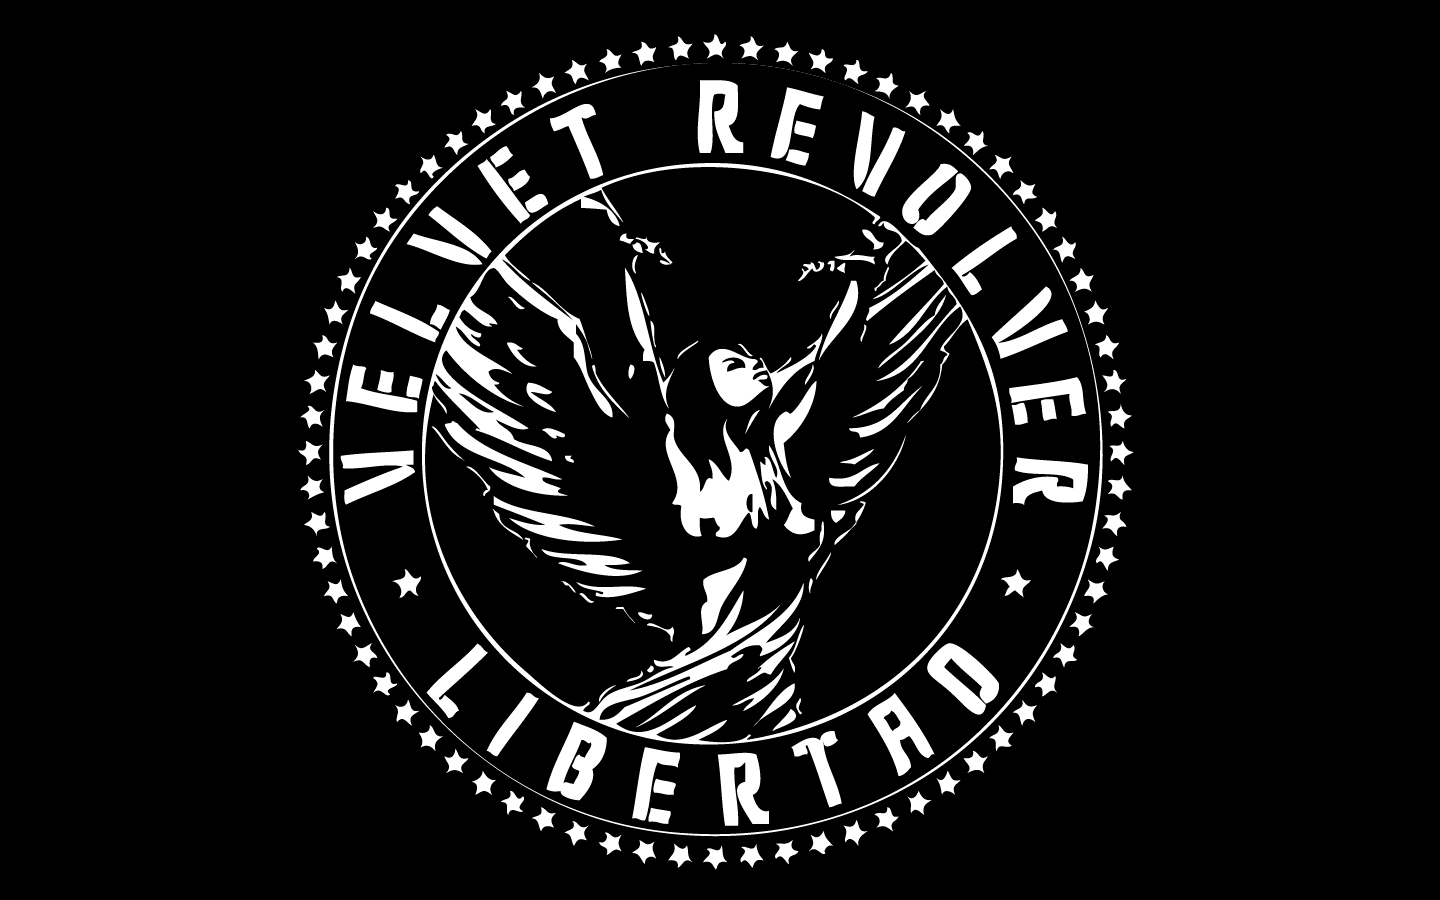 Revolver (26/01/2015, 0.08 Mb) - B.SCB Wallpapers